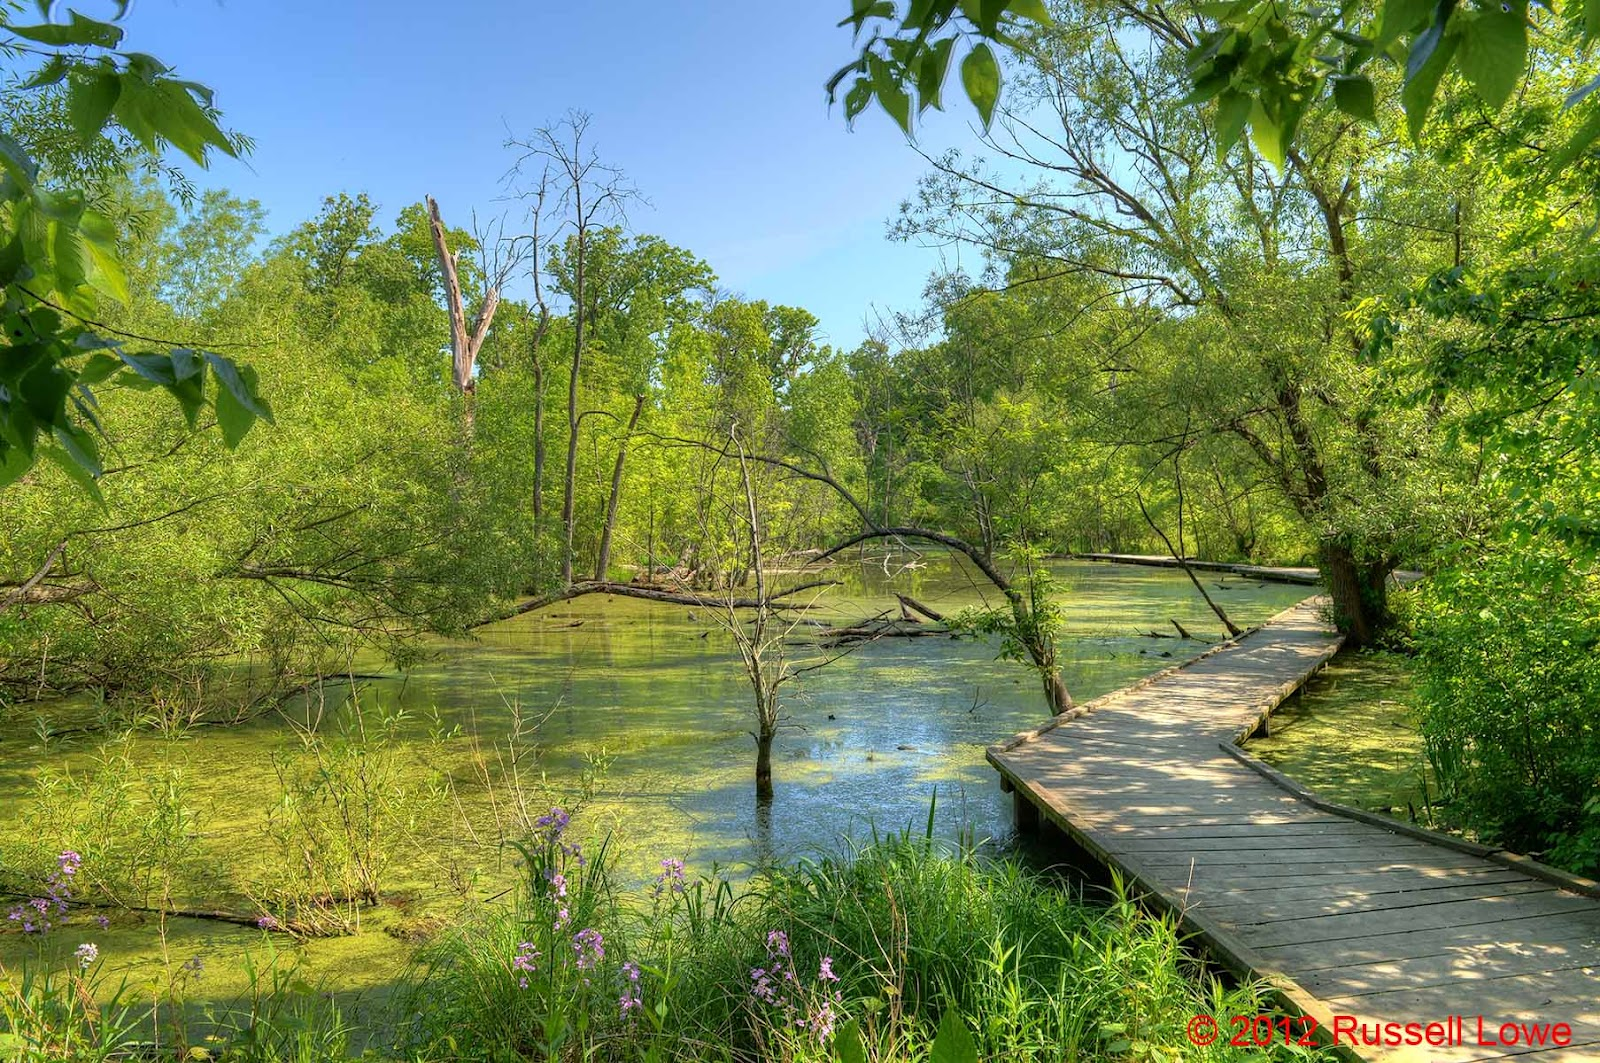 quotThe Way I See Itquot Russ Lowe Nikon D4 HDR Images from